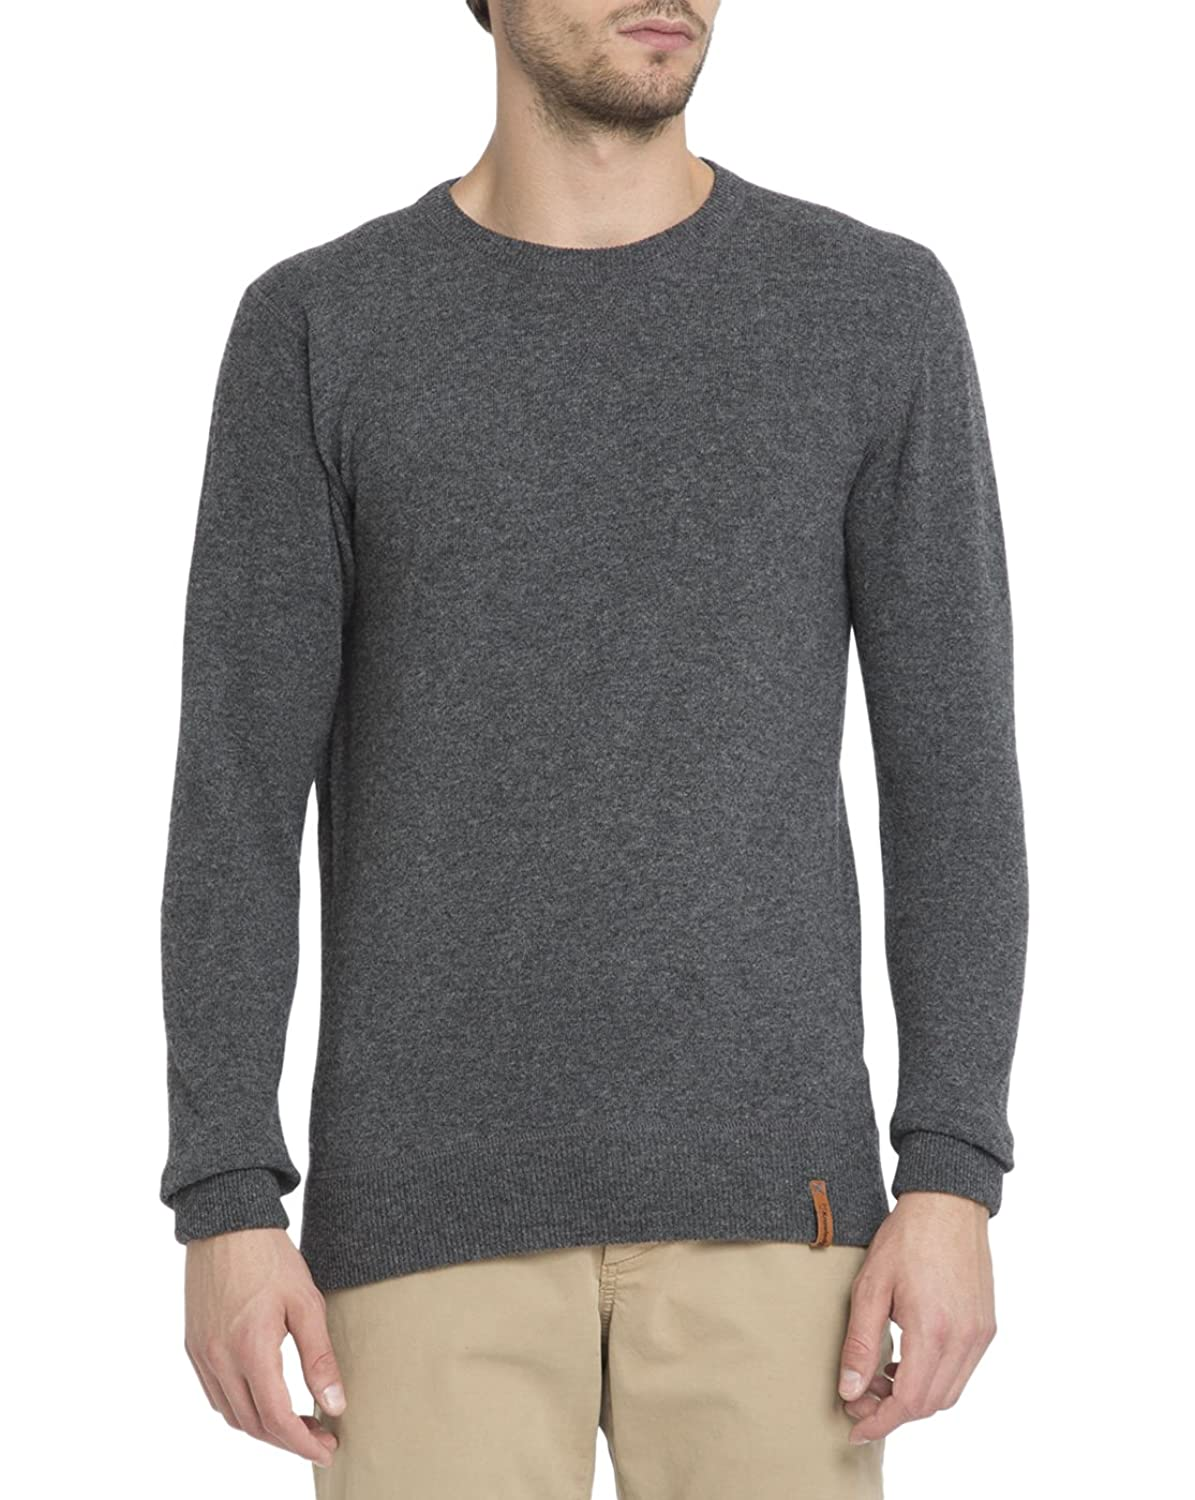 KNOWLEDGE COTTON APPAREL - Crew-neck Sweaters - Men - Charcoal Lambswool Round-Neck Sweater for men